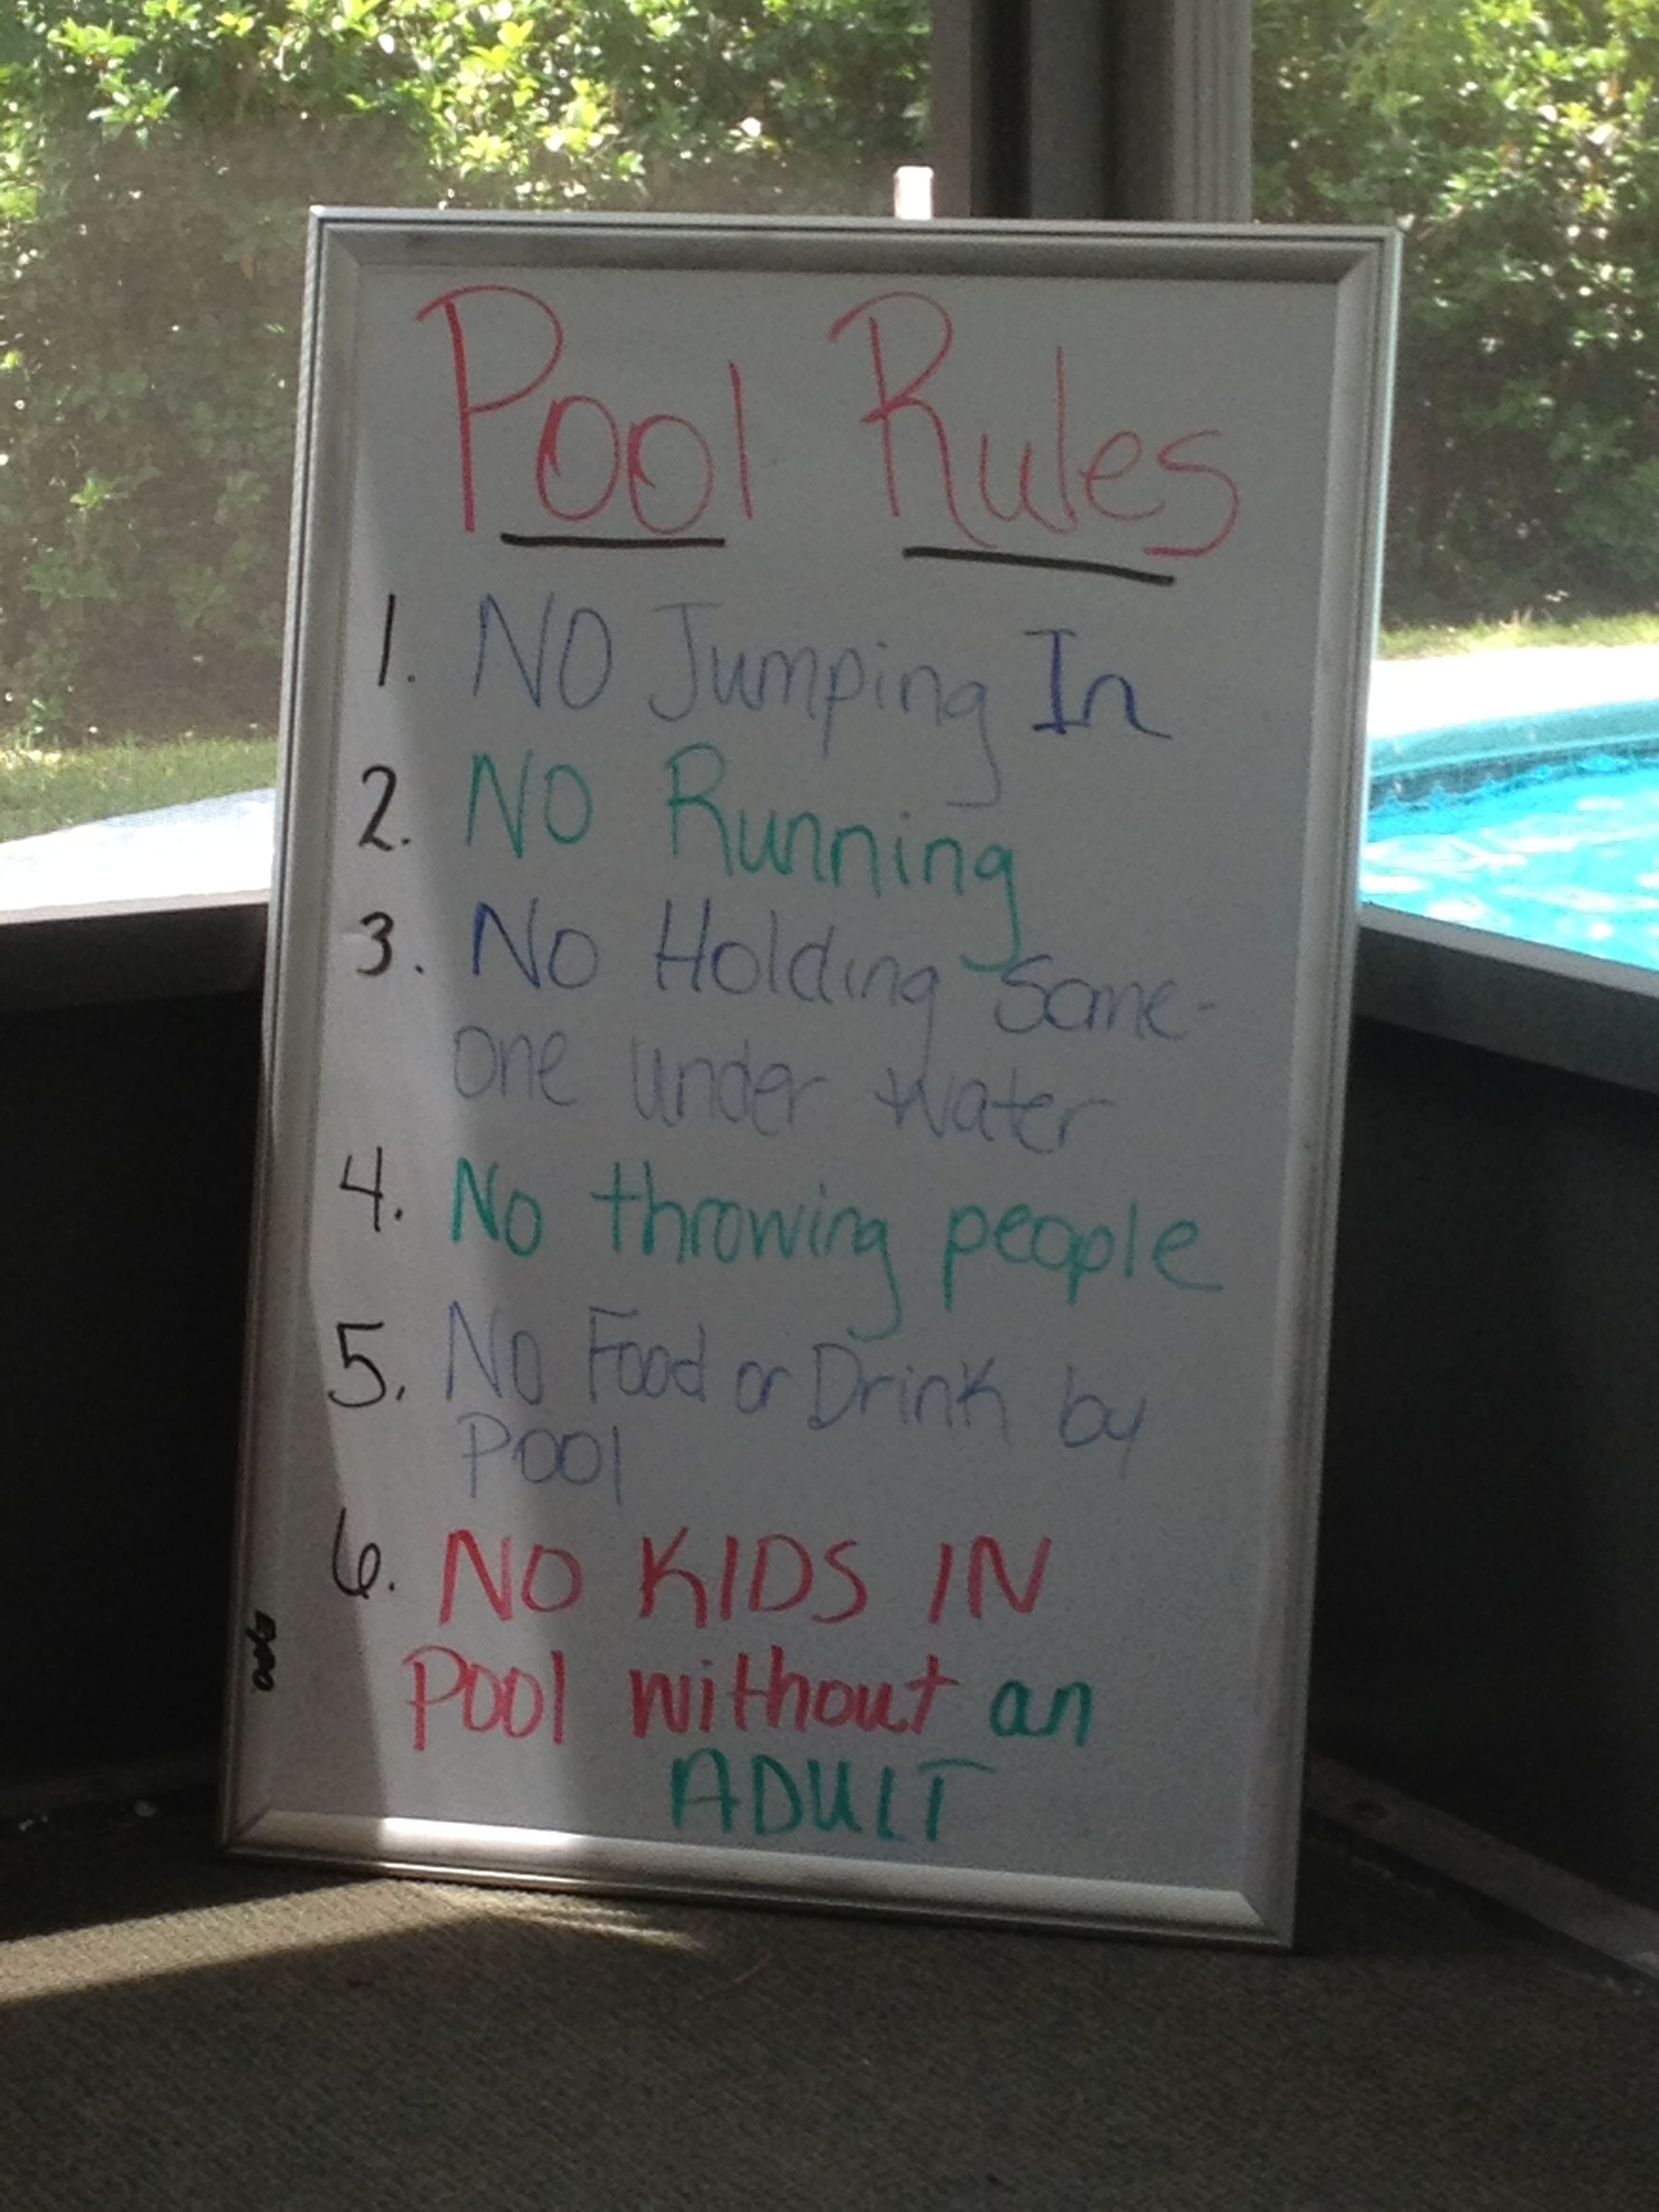 White Board with pool rules on it for an at home pool party ...